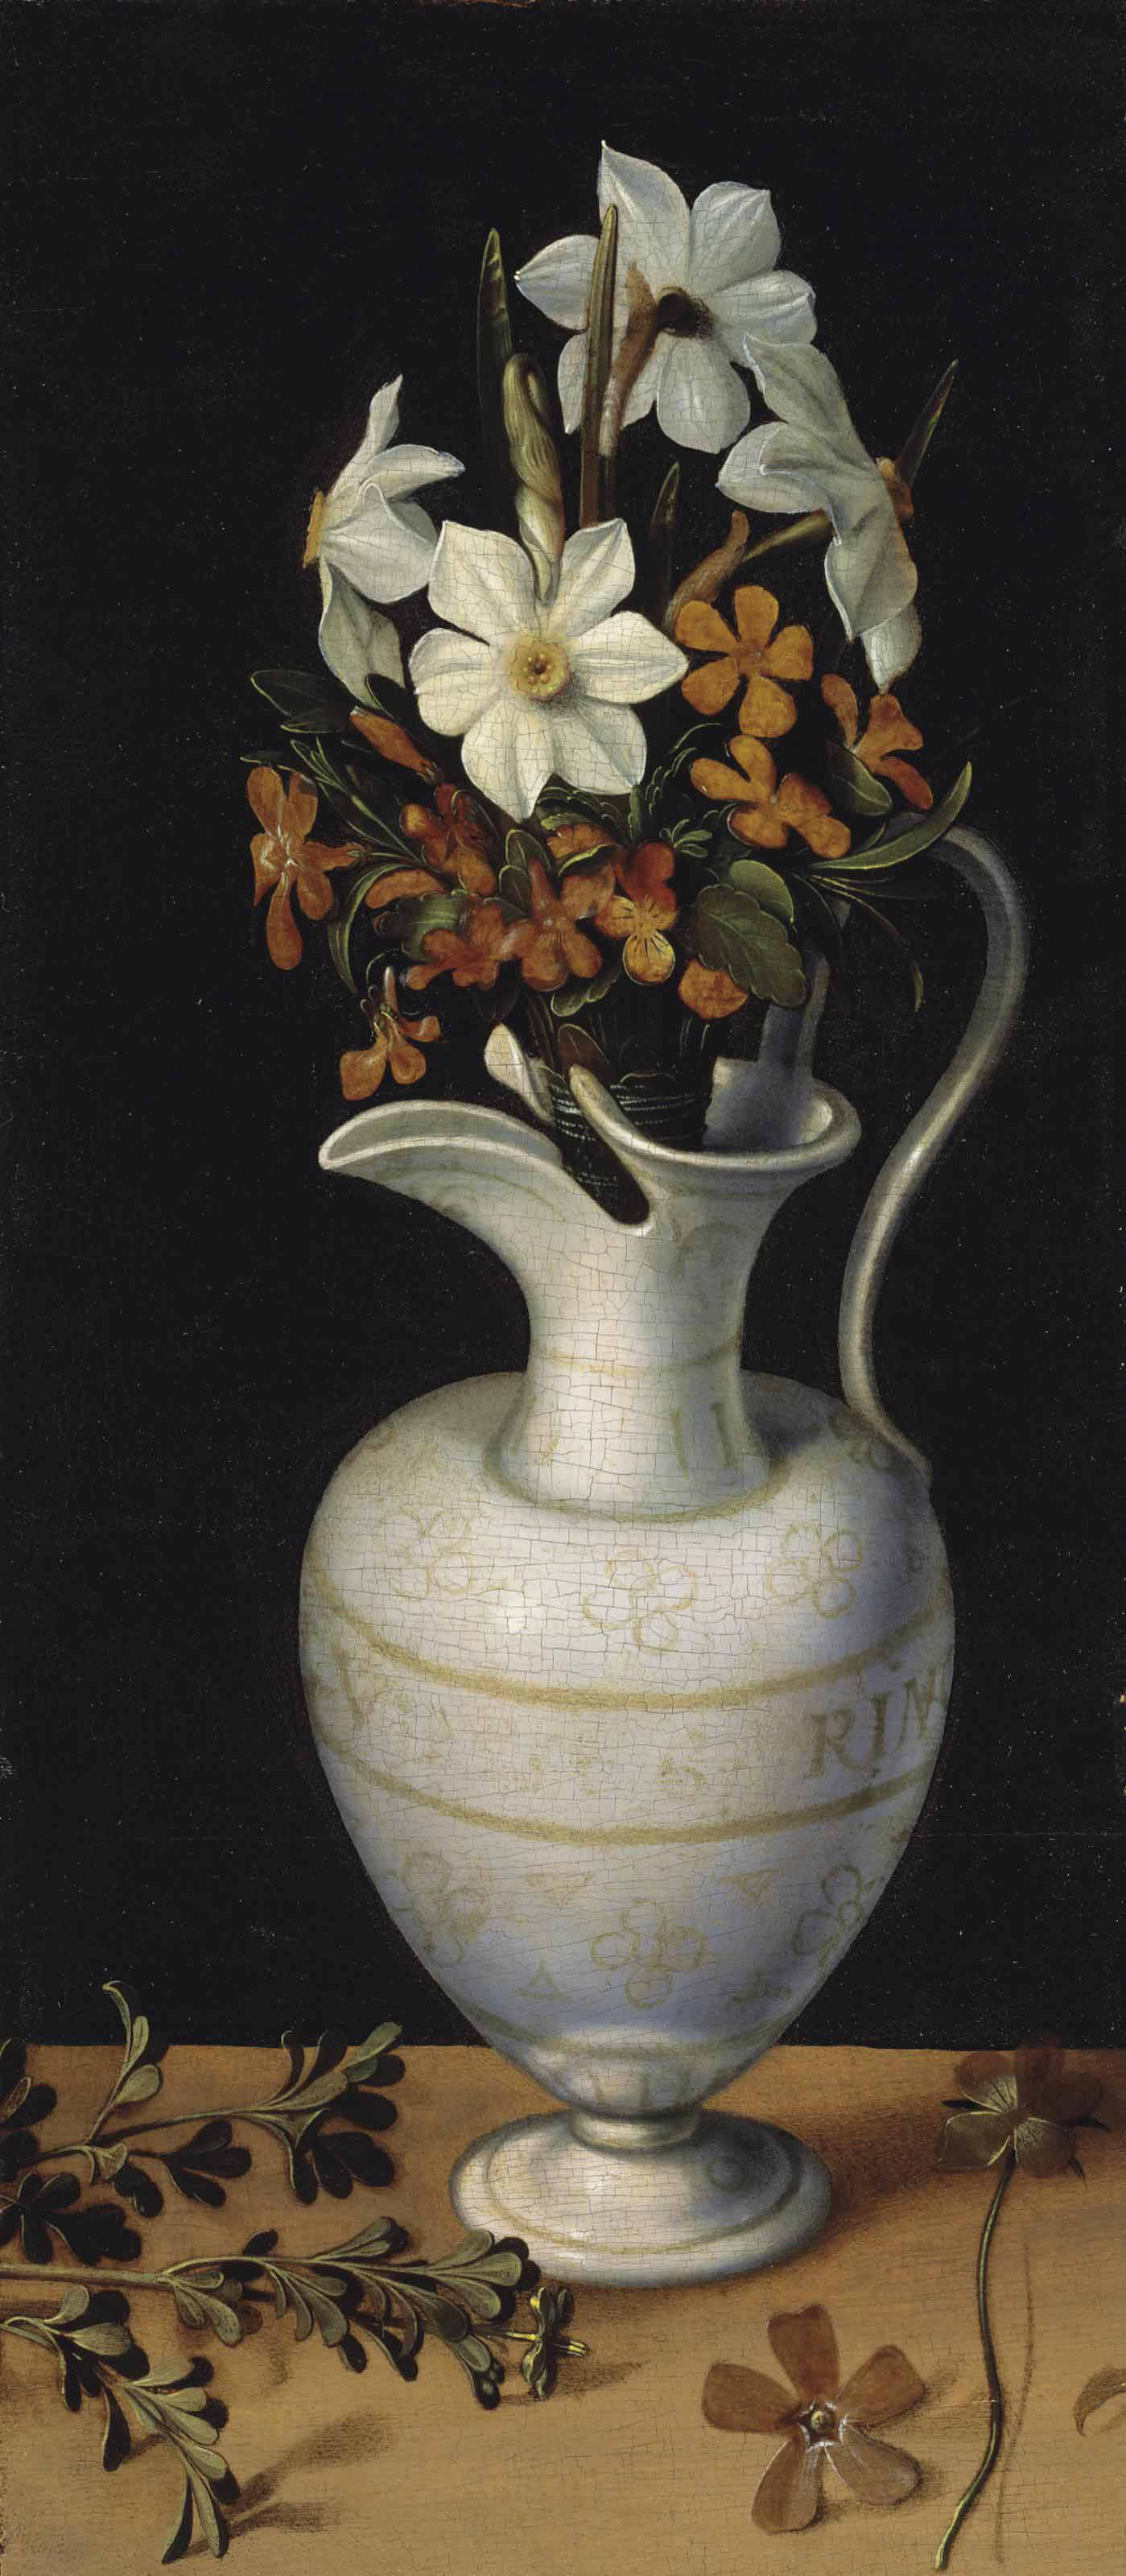 Narcissi, calamine violets and periwinkle in a façon-de-Venise ewer, on a ledge with a sprig of rue